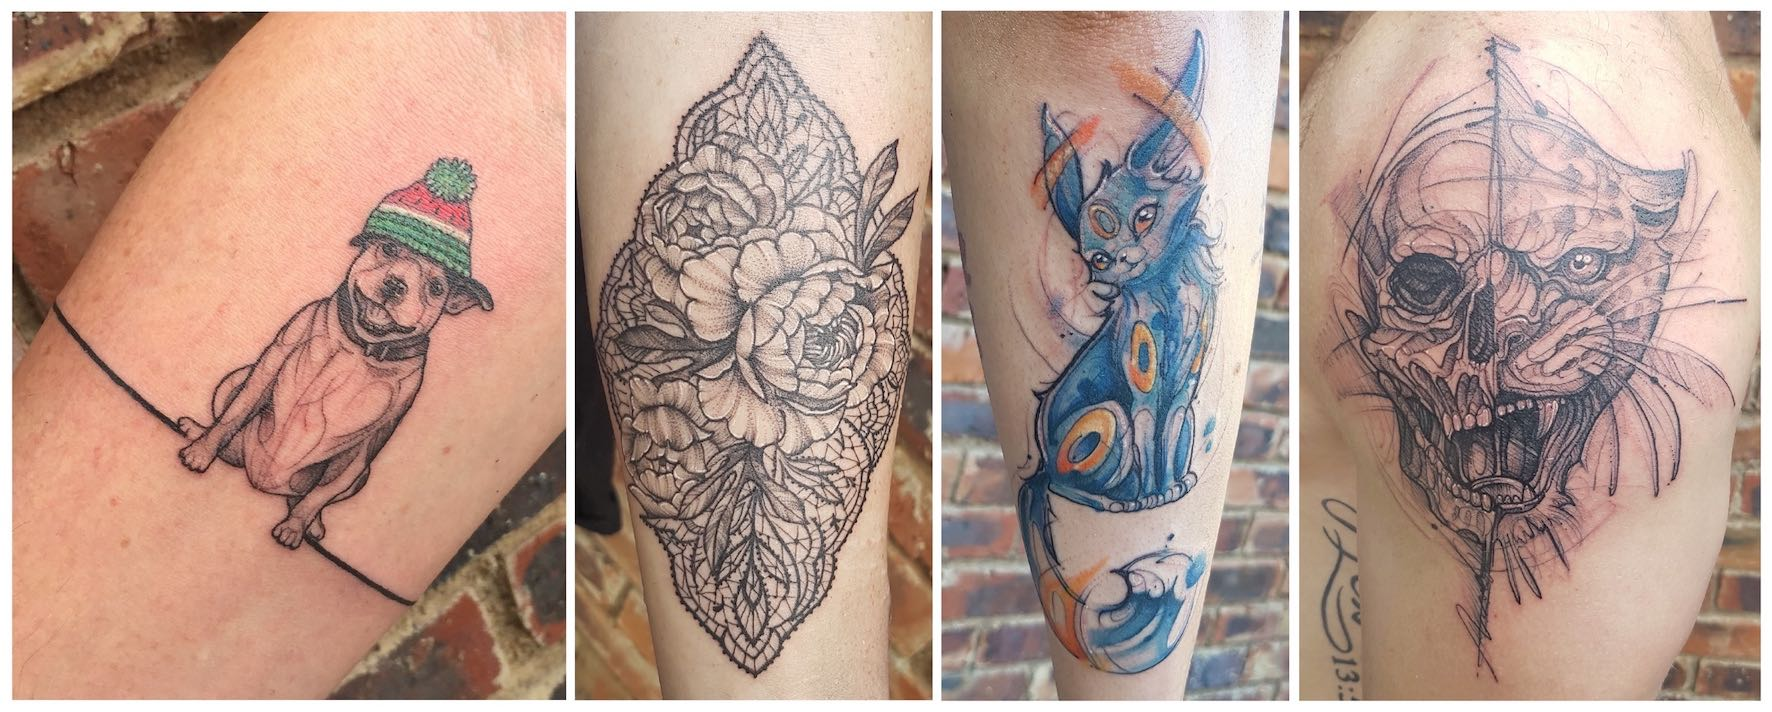 A selection of tattoos created by Rocio Todisco